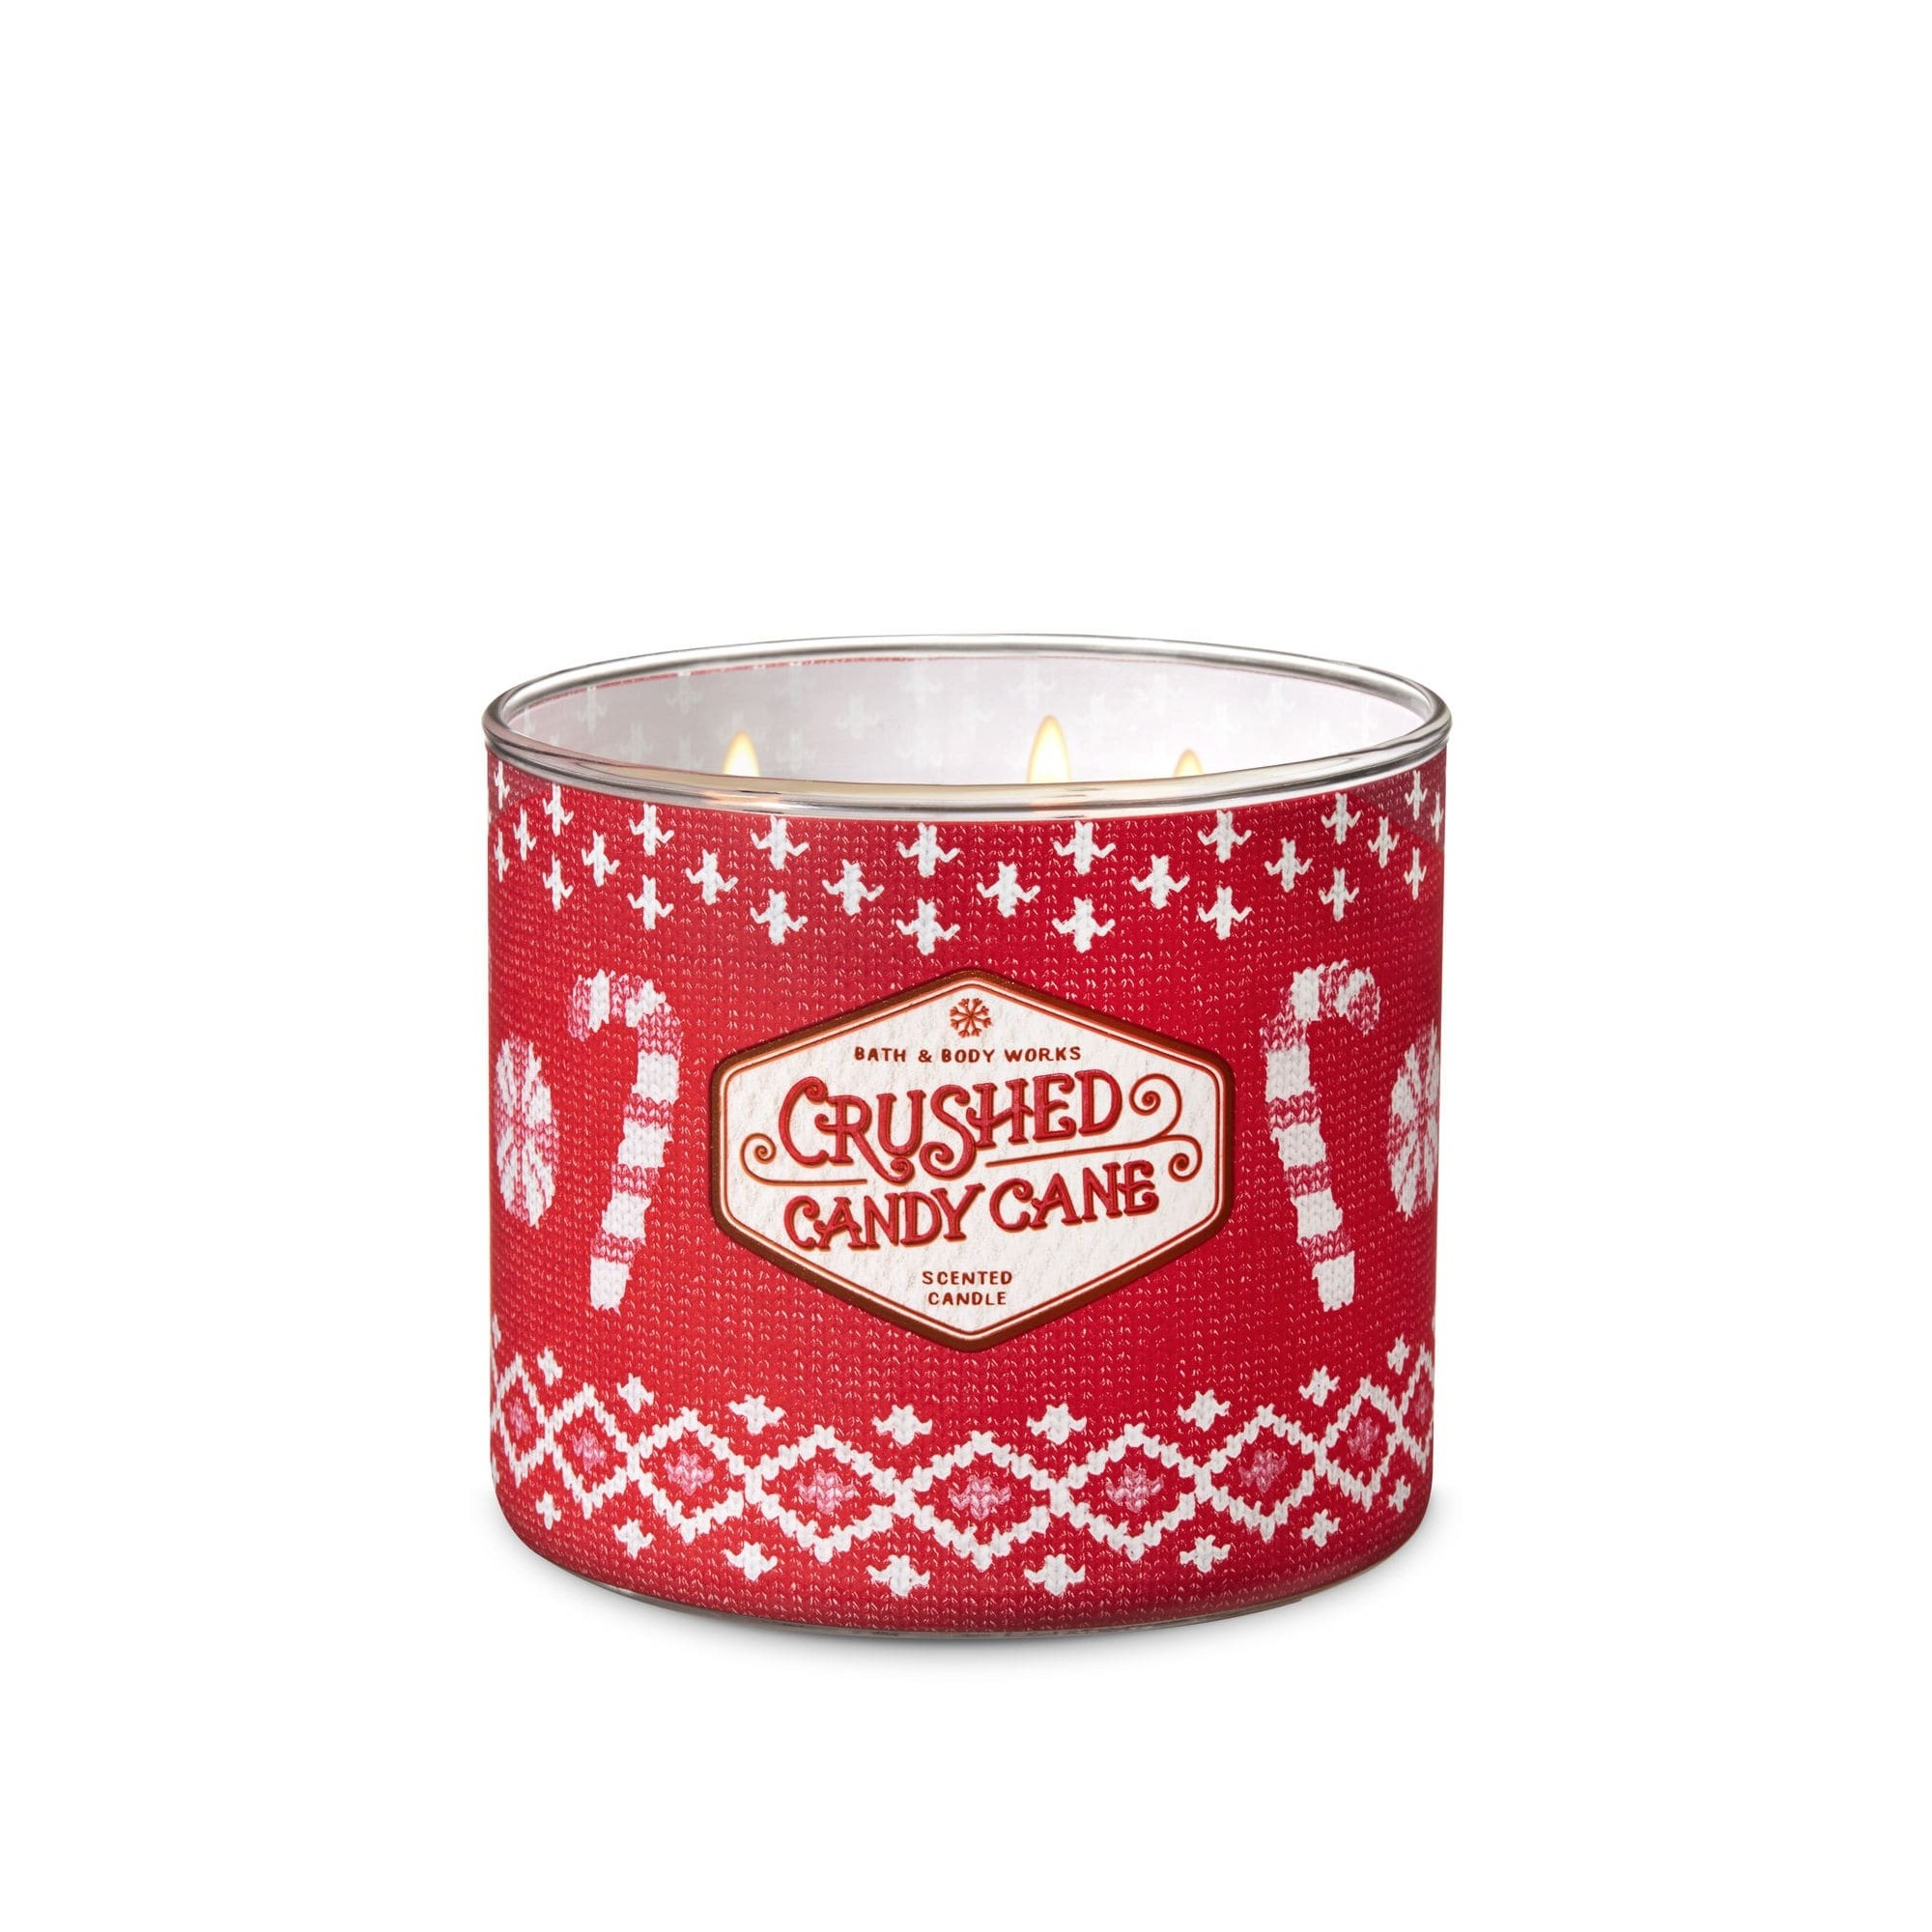 Bath & Body Works Crushed Candy Cane 3 Wick Scented Candle